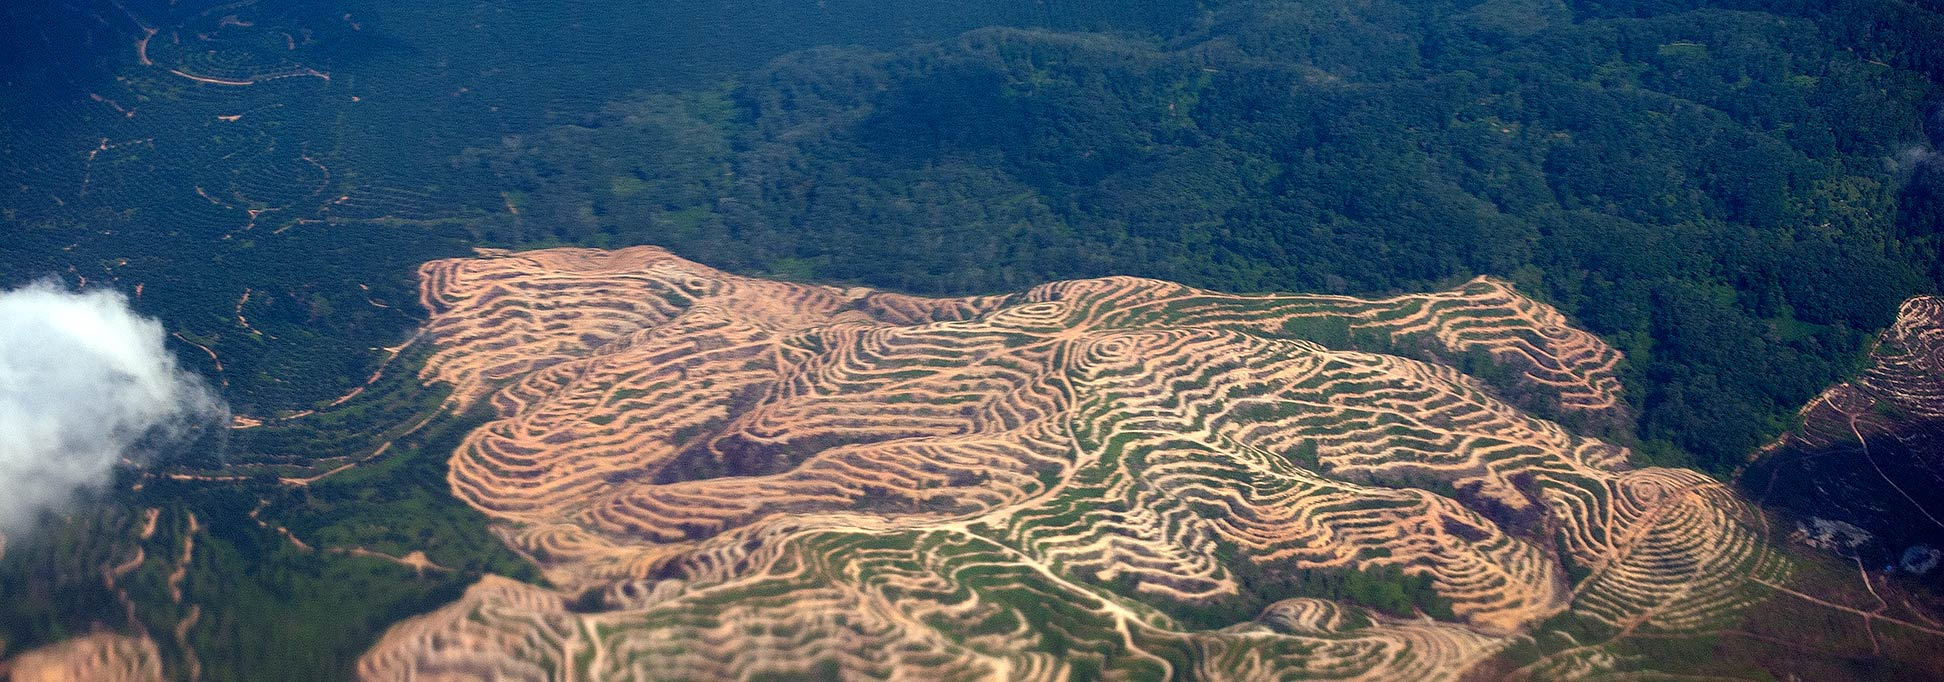 Terraced landscape in northern Malaysia